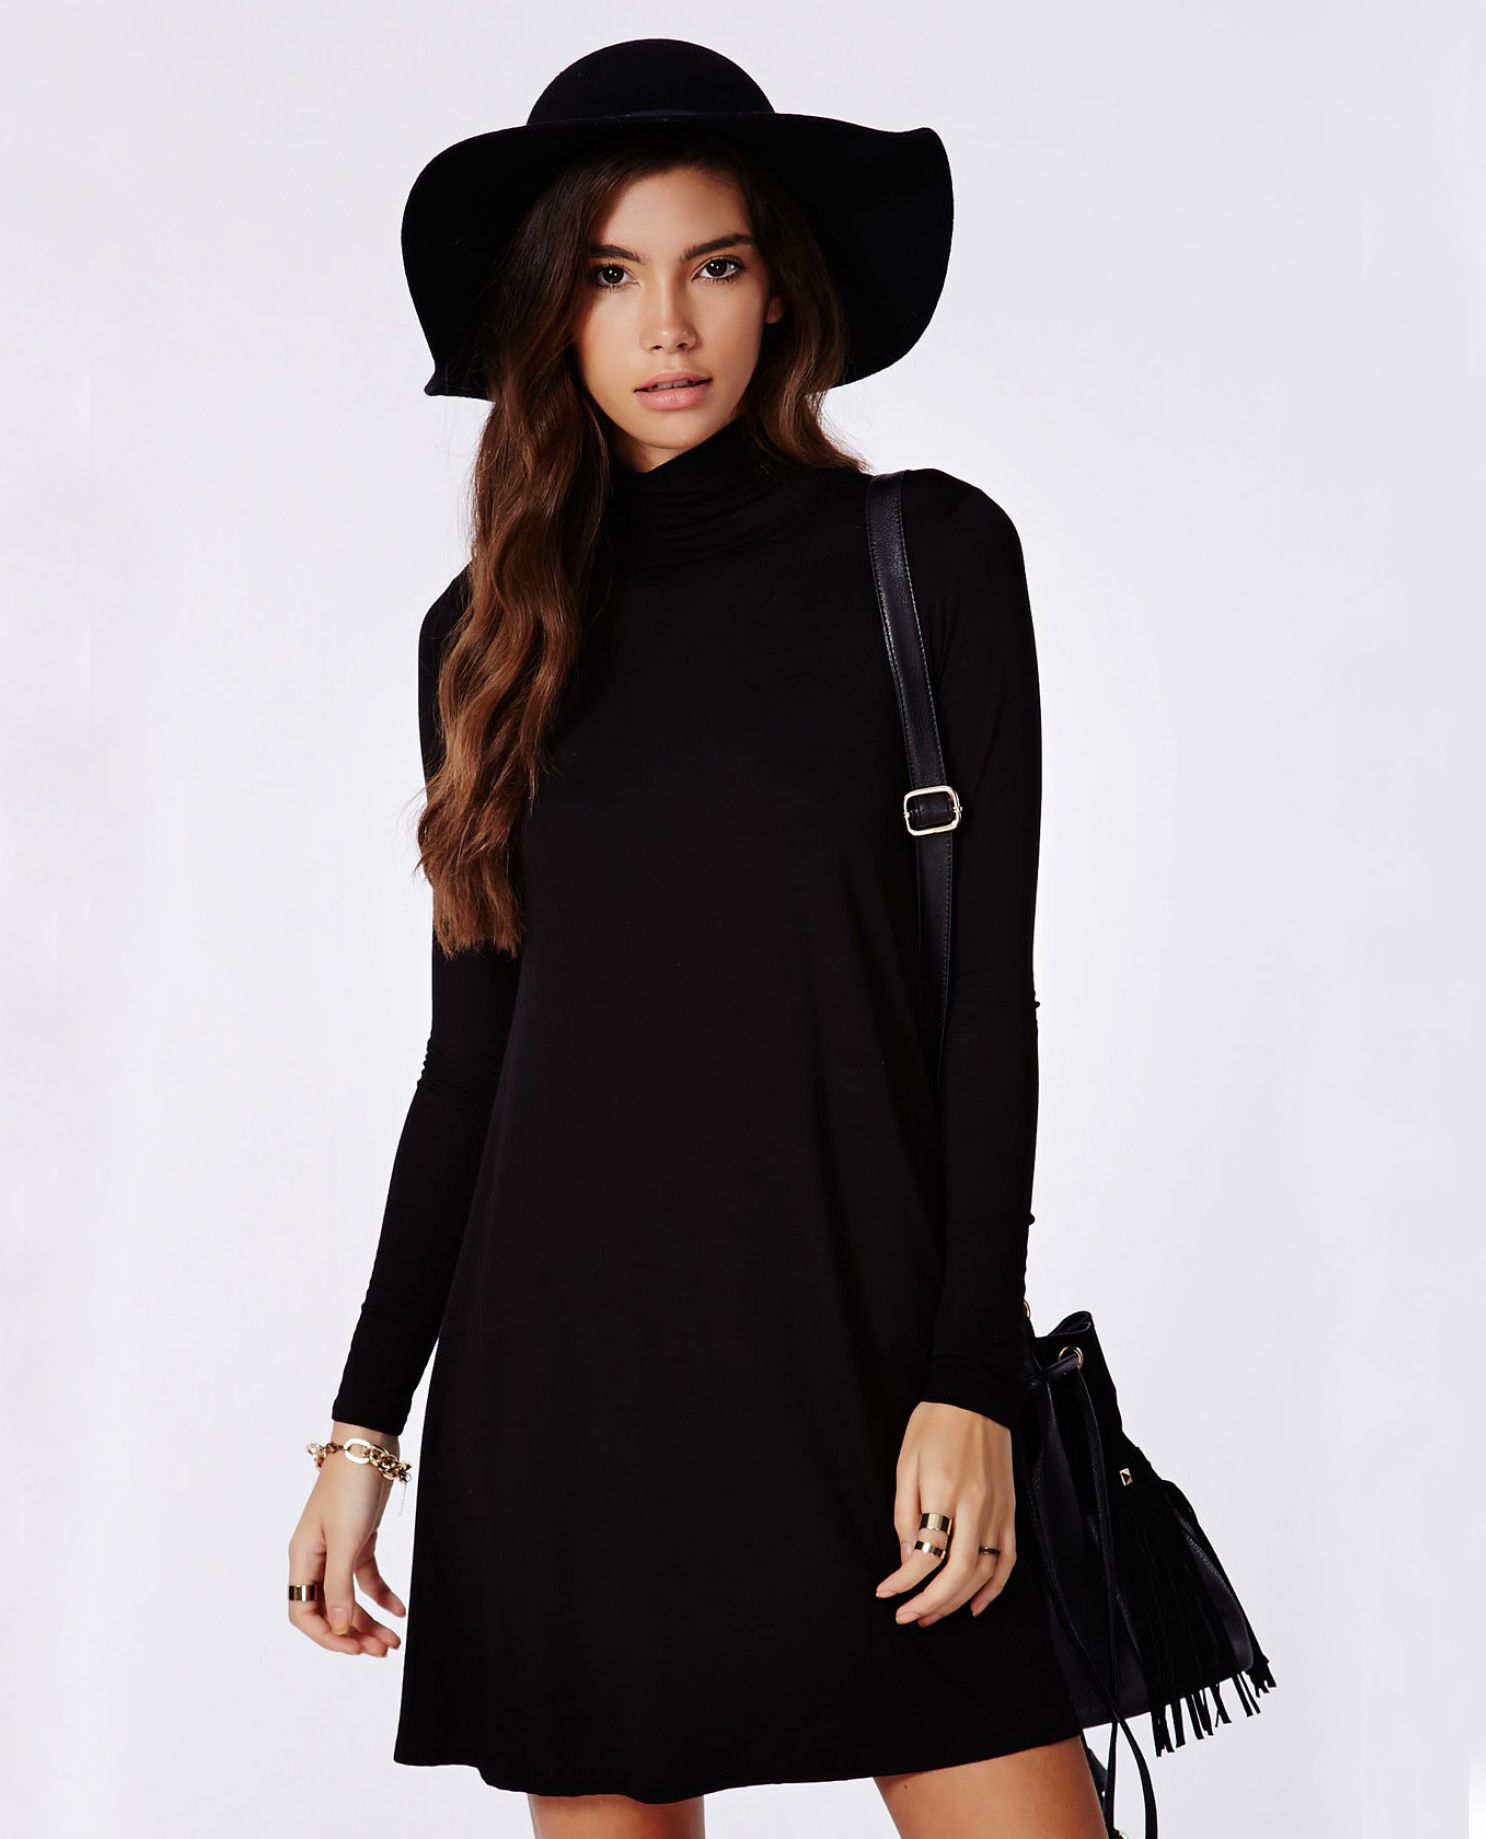 Black long sleeve casual dress fashion pinterest black